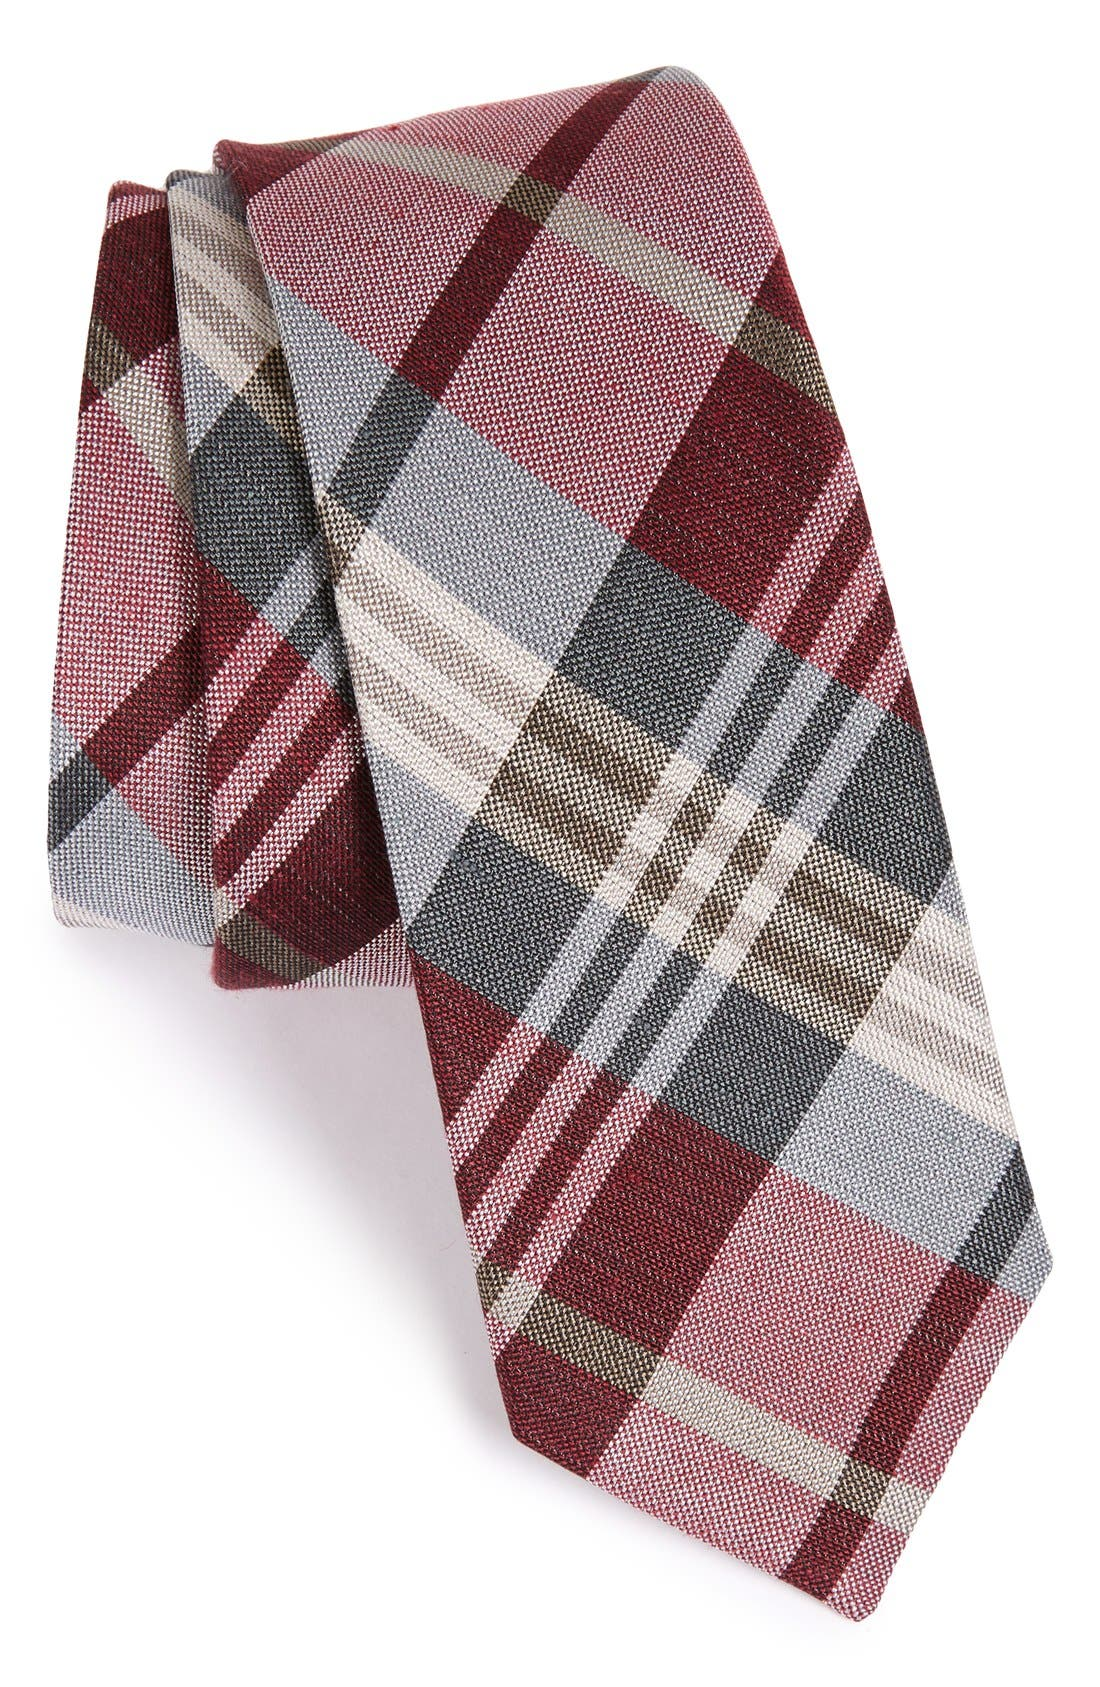 Plaid Silk & Linen Tie,                         Main,                         color, Burgundy